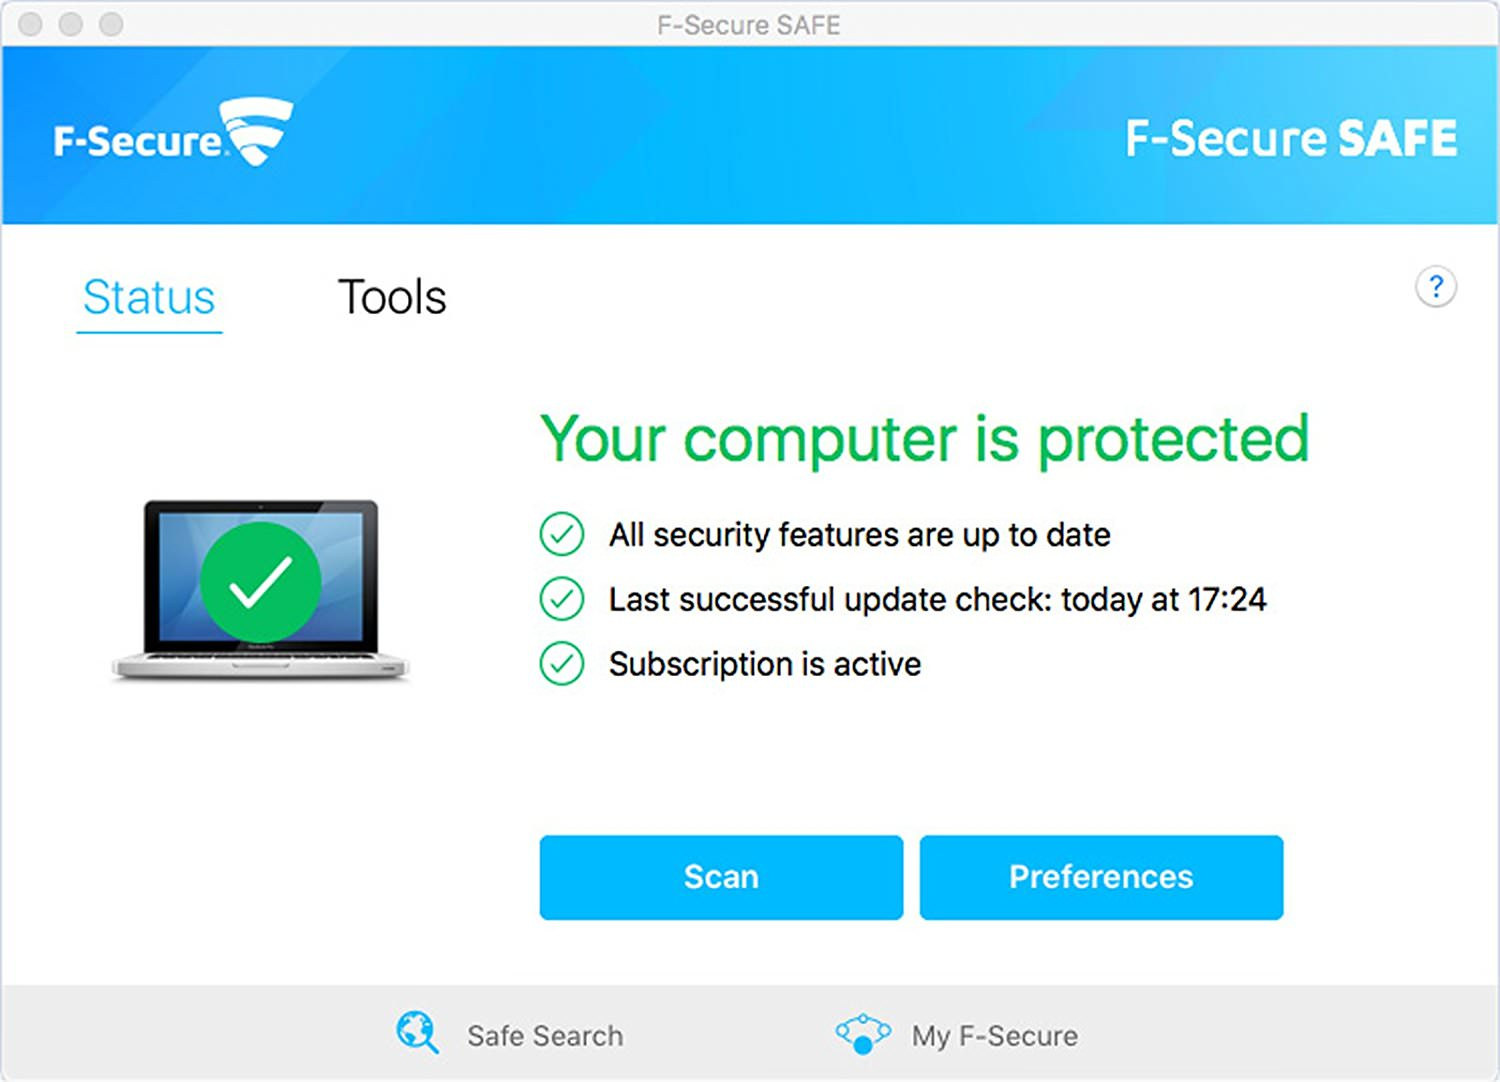 Free Internet Security >> F Secure Safe 1 Year Activation Free Internet Security For